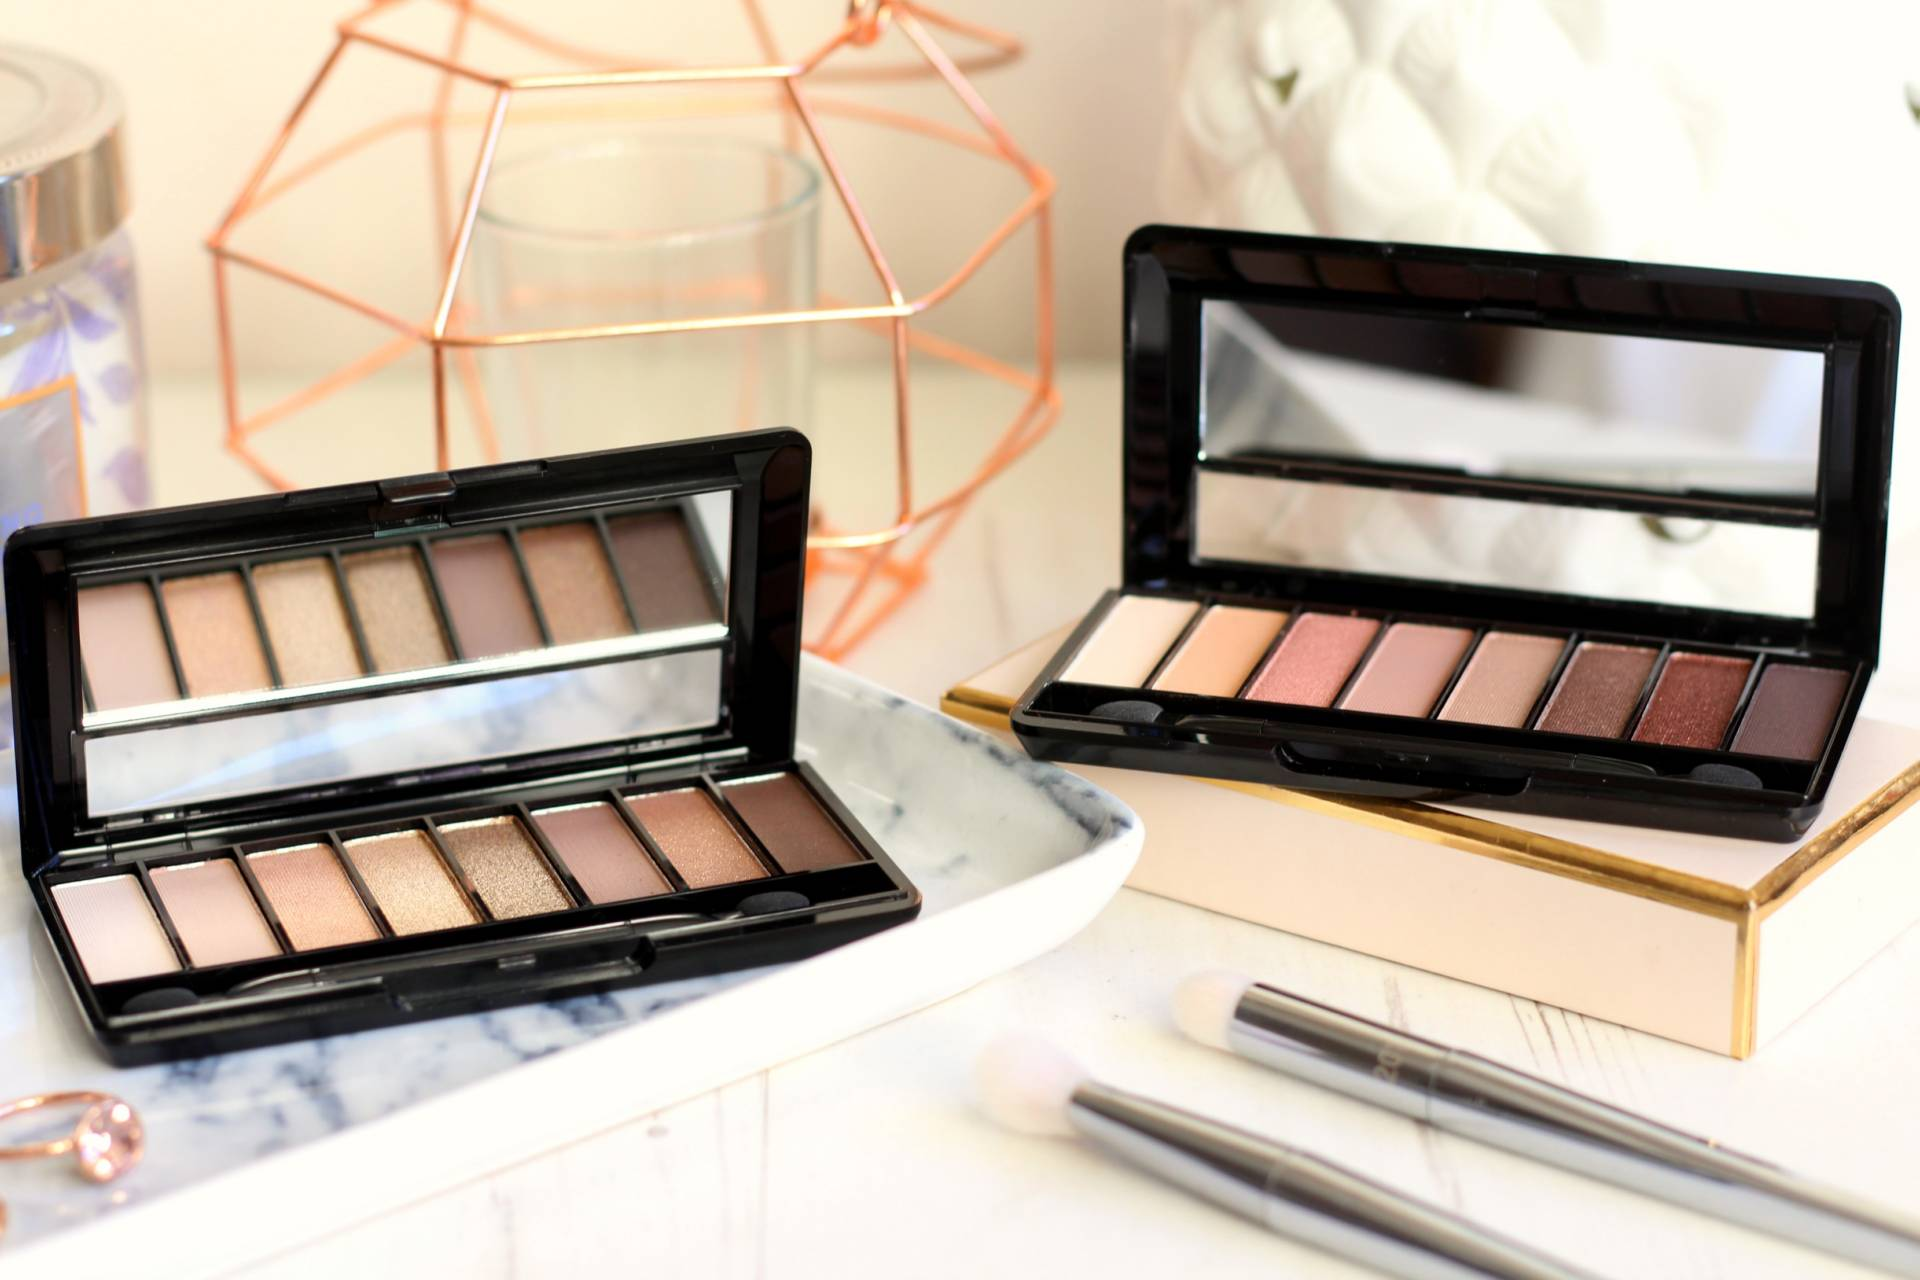 New in from Rimmel – Magnif'eyes Eyeshadow Palettes